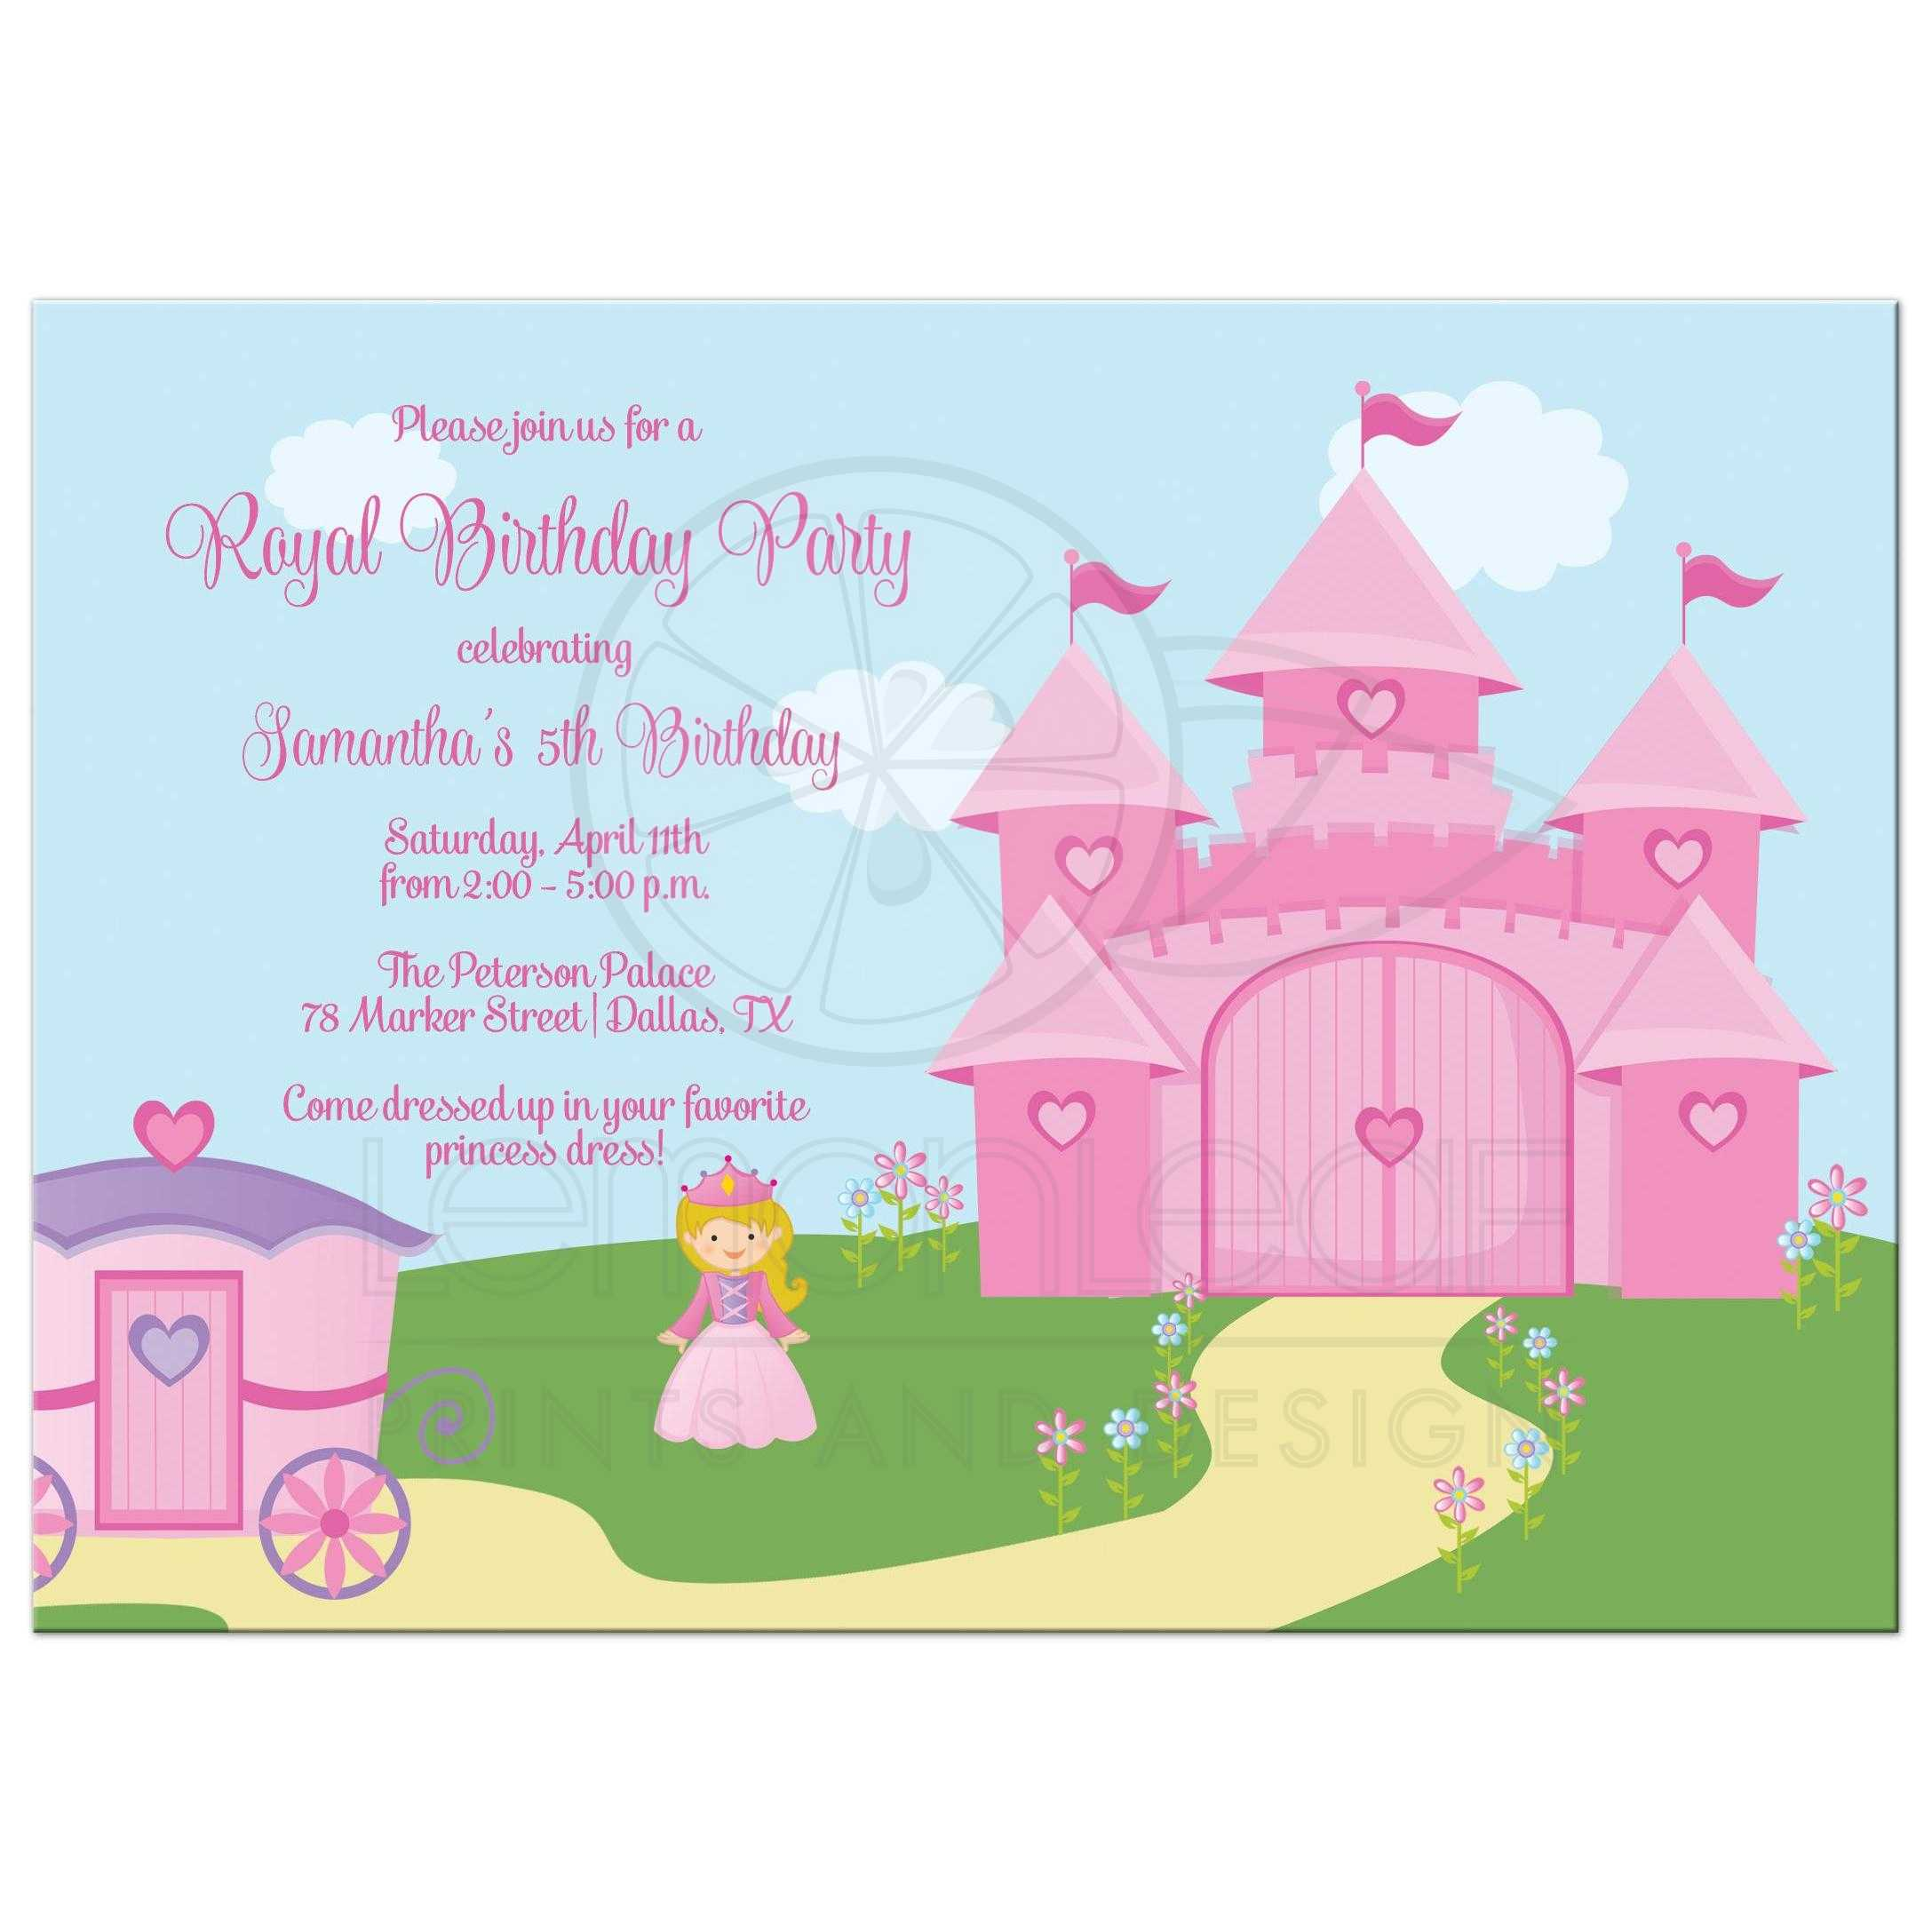 Birthday party invitation pink and purple princess theme princess birthday party invitations filmwisefo